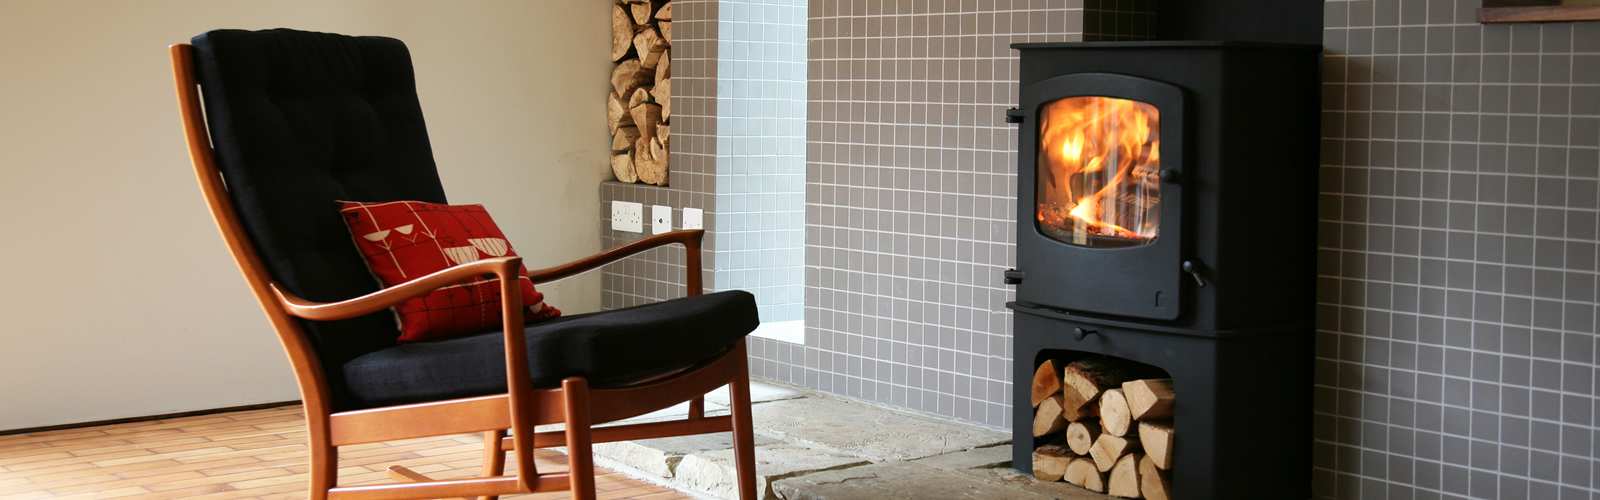 stove fireplace flue specialist fitters chimney sweeps preston